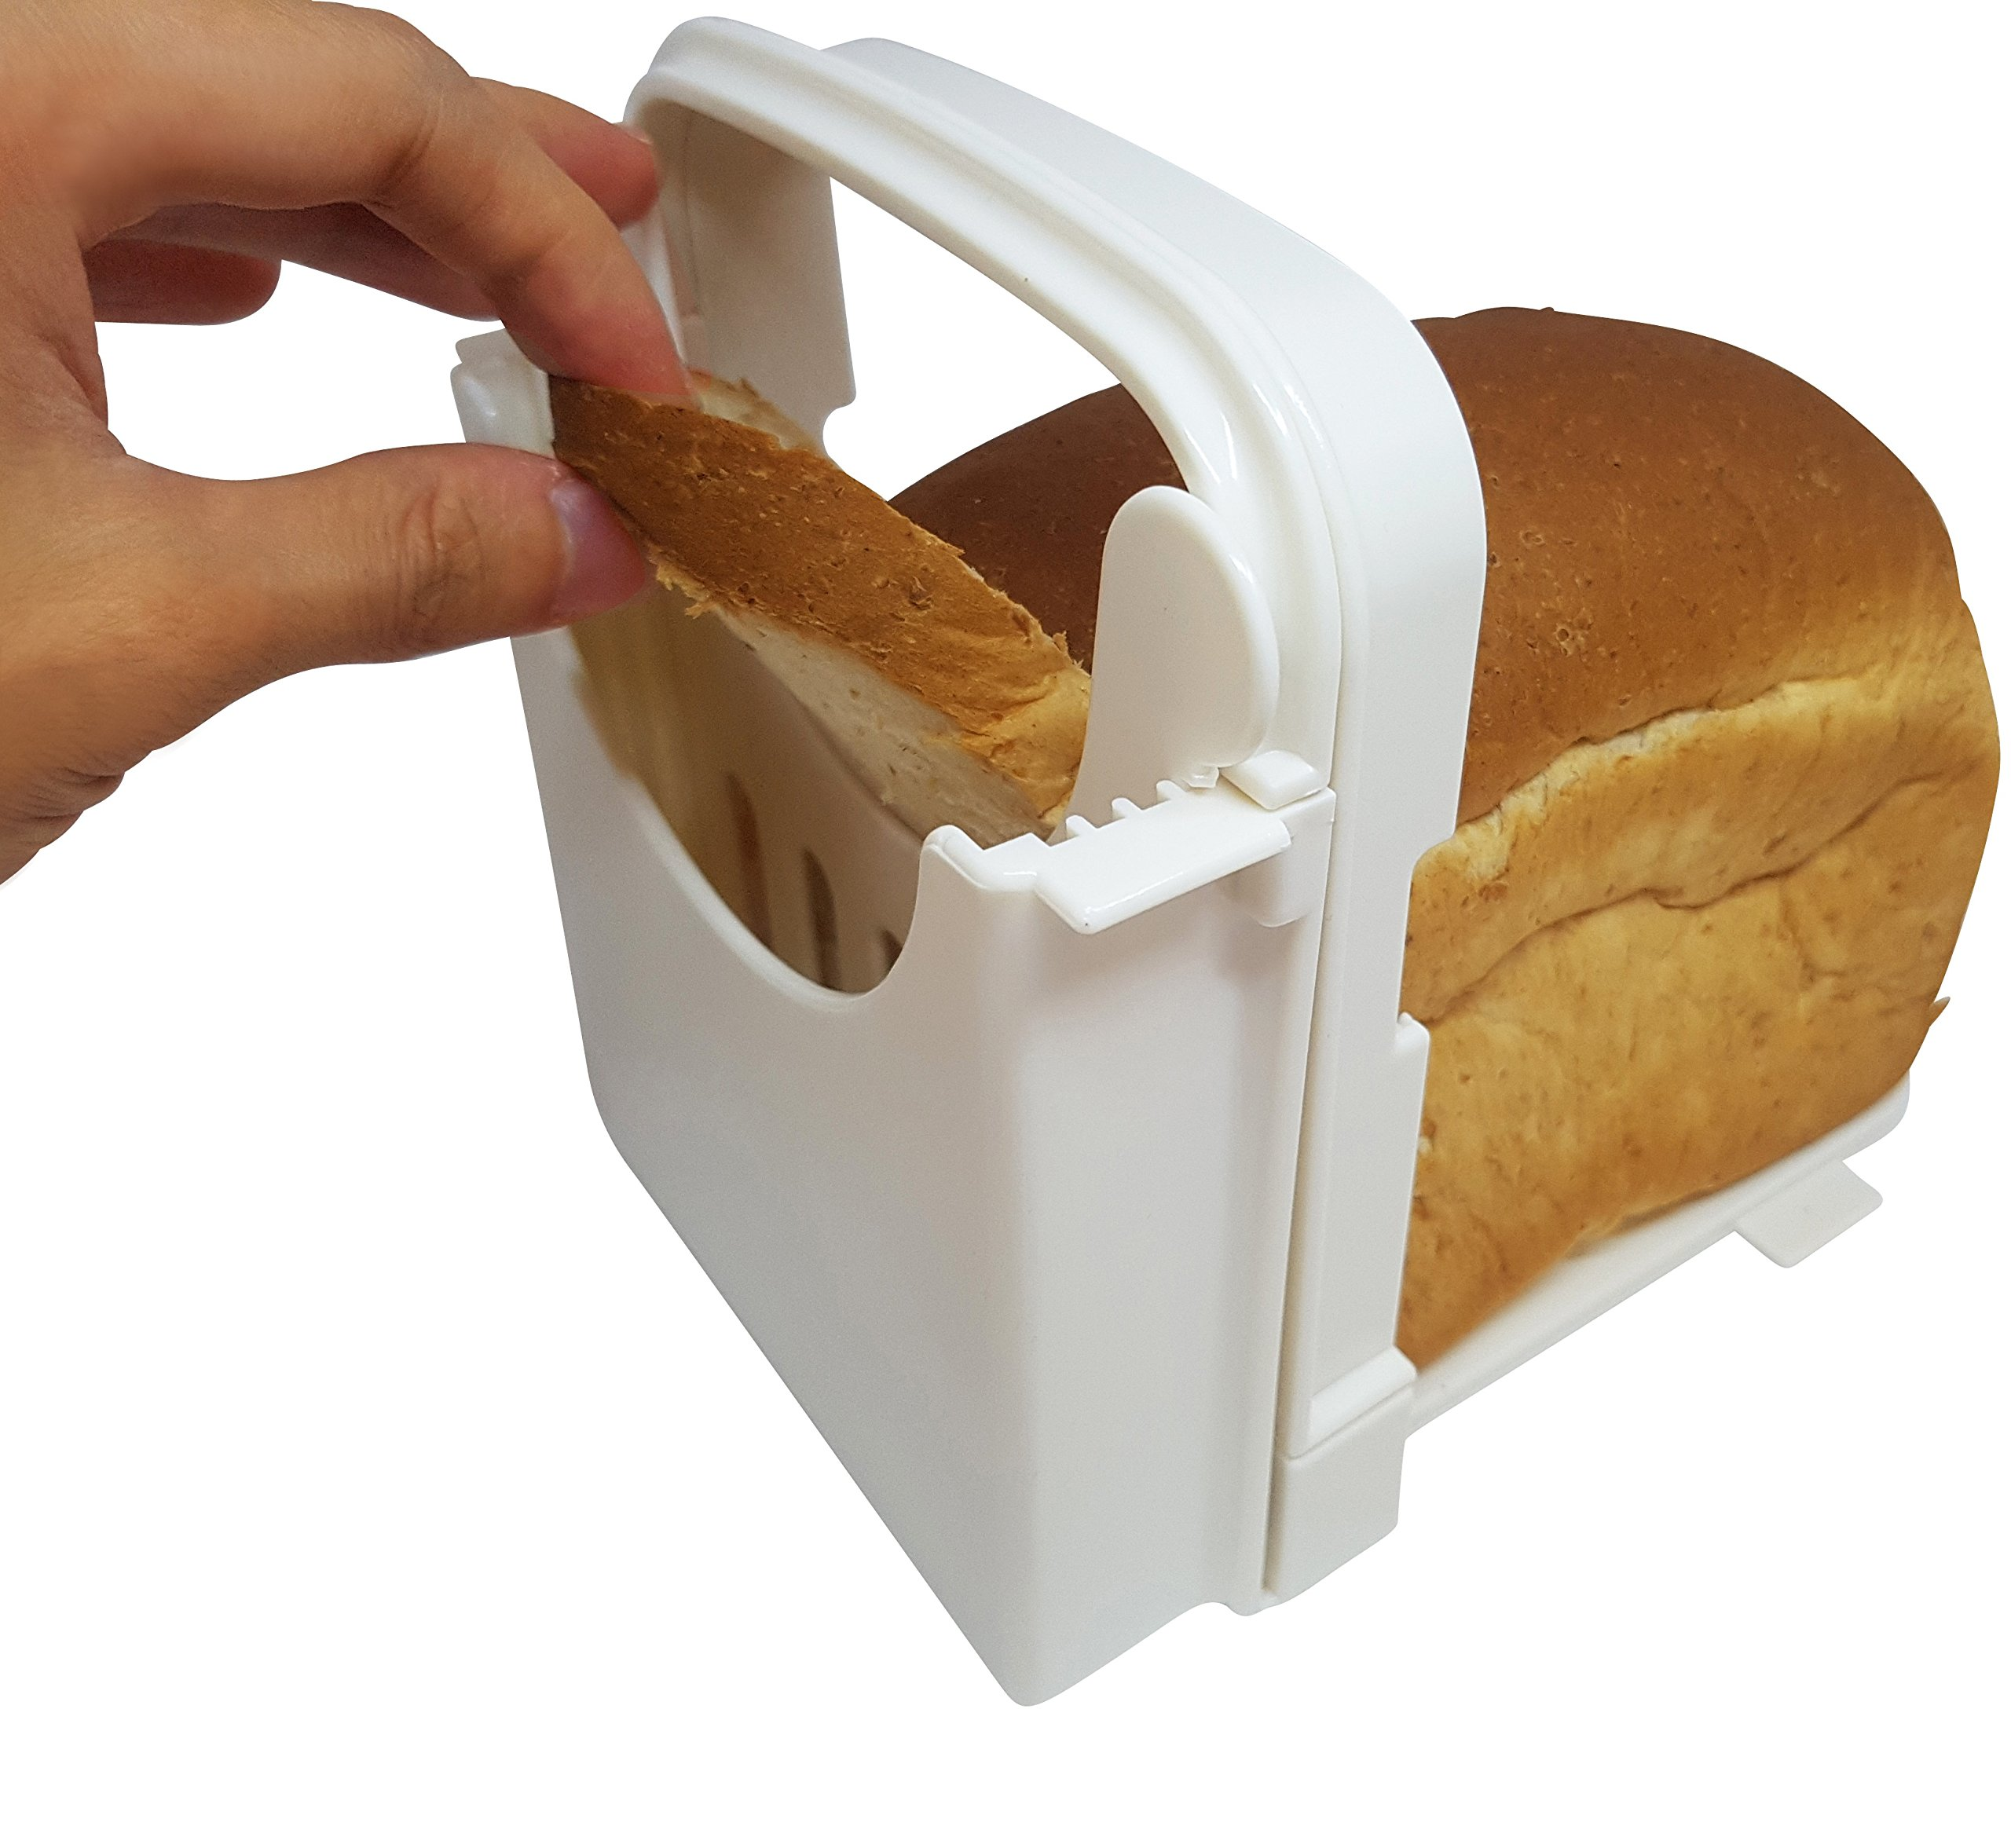 Eon Concepts Bread Slicer Guide For Homemade Bread With Mini Bread Recipe E-Book | Loaf Cutter Machine - Foldable Adjustable & Customizable to 5 Thickness | Bagel / Sandwich / Toast Slicer by Eon Concepts (Image #5)